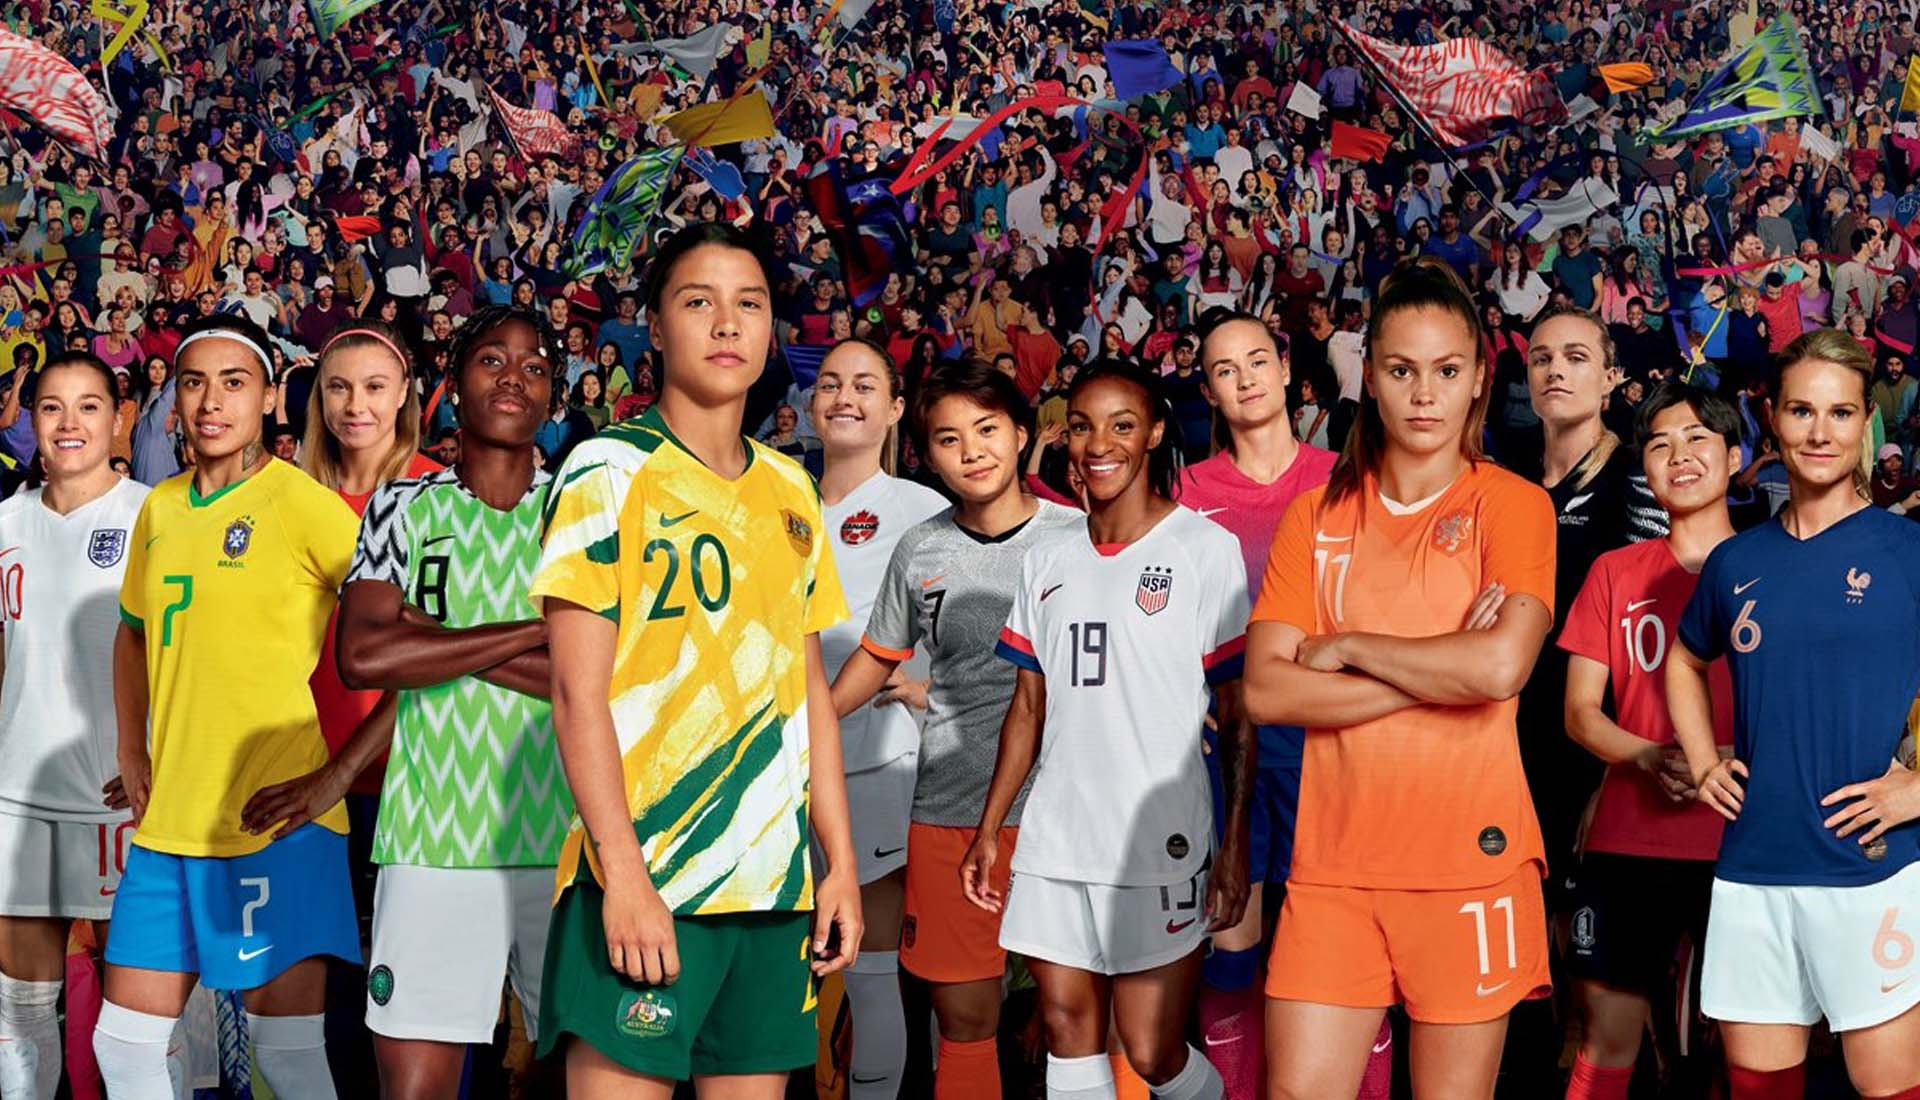 Contradecir Bienes diversos Becks  How Nike Dominated The 2019 Women's World Cup - SoccerBible